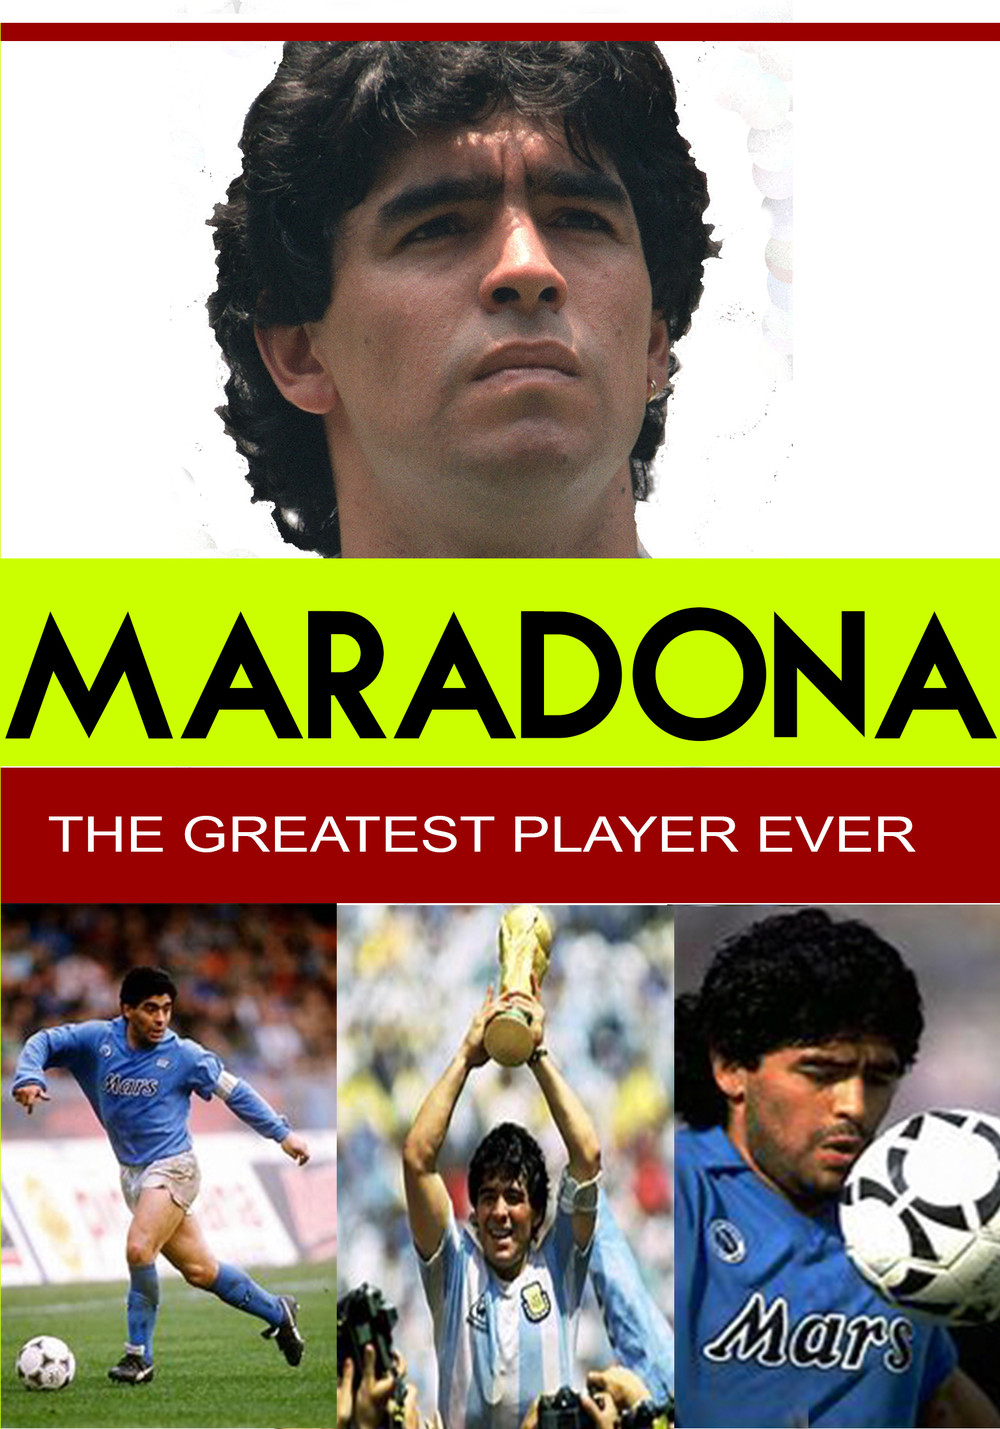 L7814 - Maradona - The Greatest Player Ever